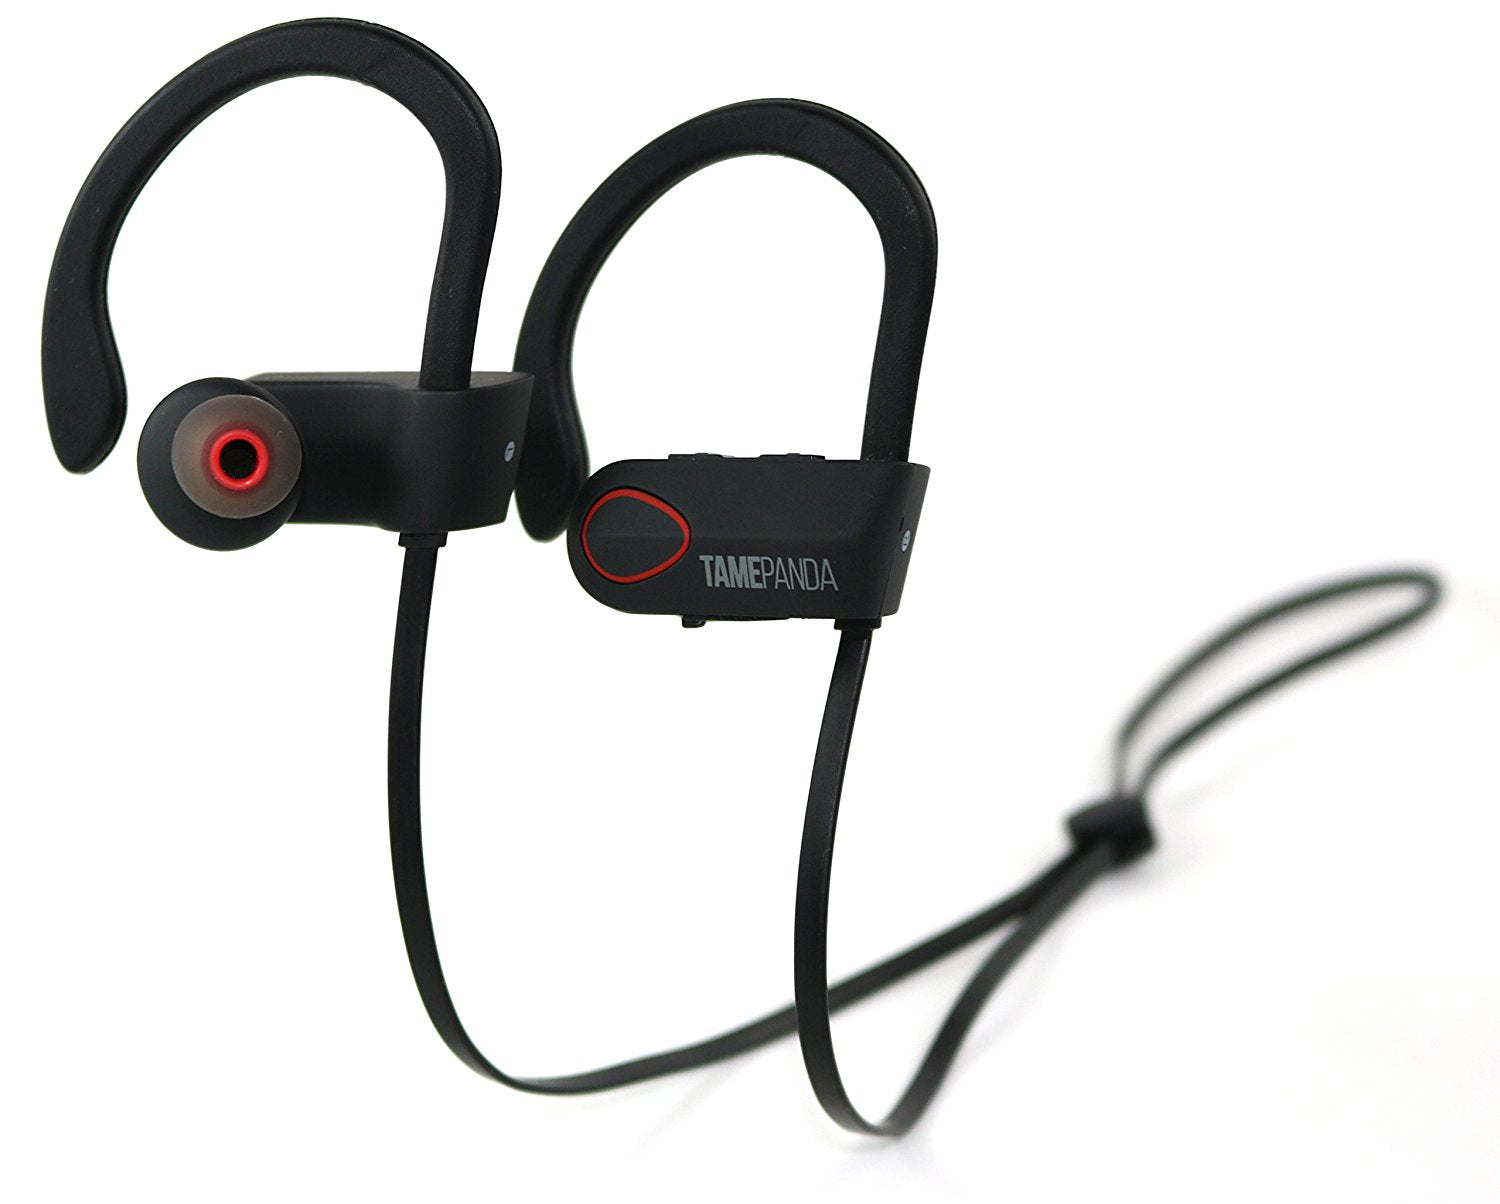 TamePanda Wireless Bluetooth Waterproof Headphones